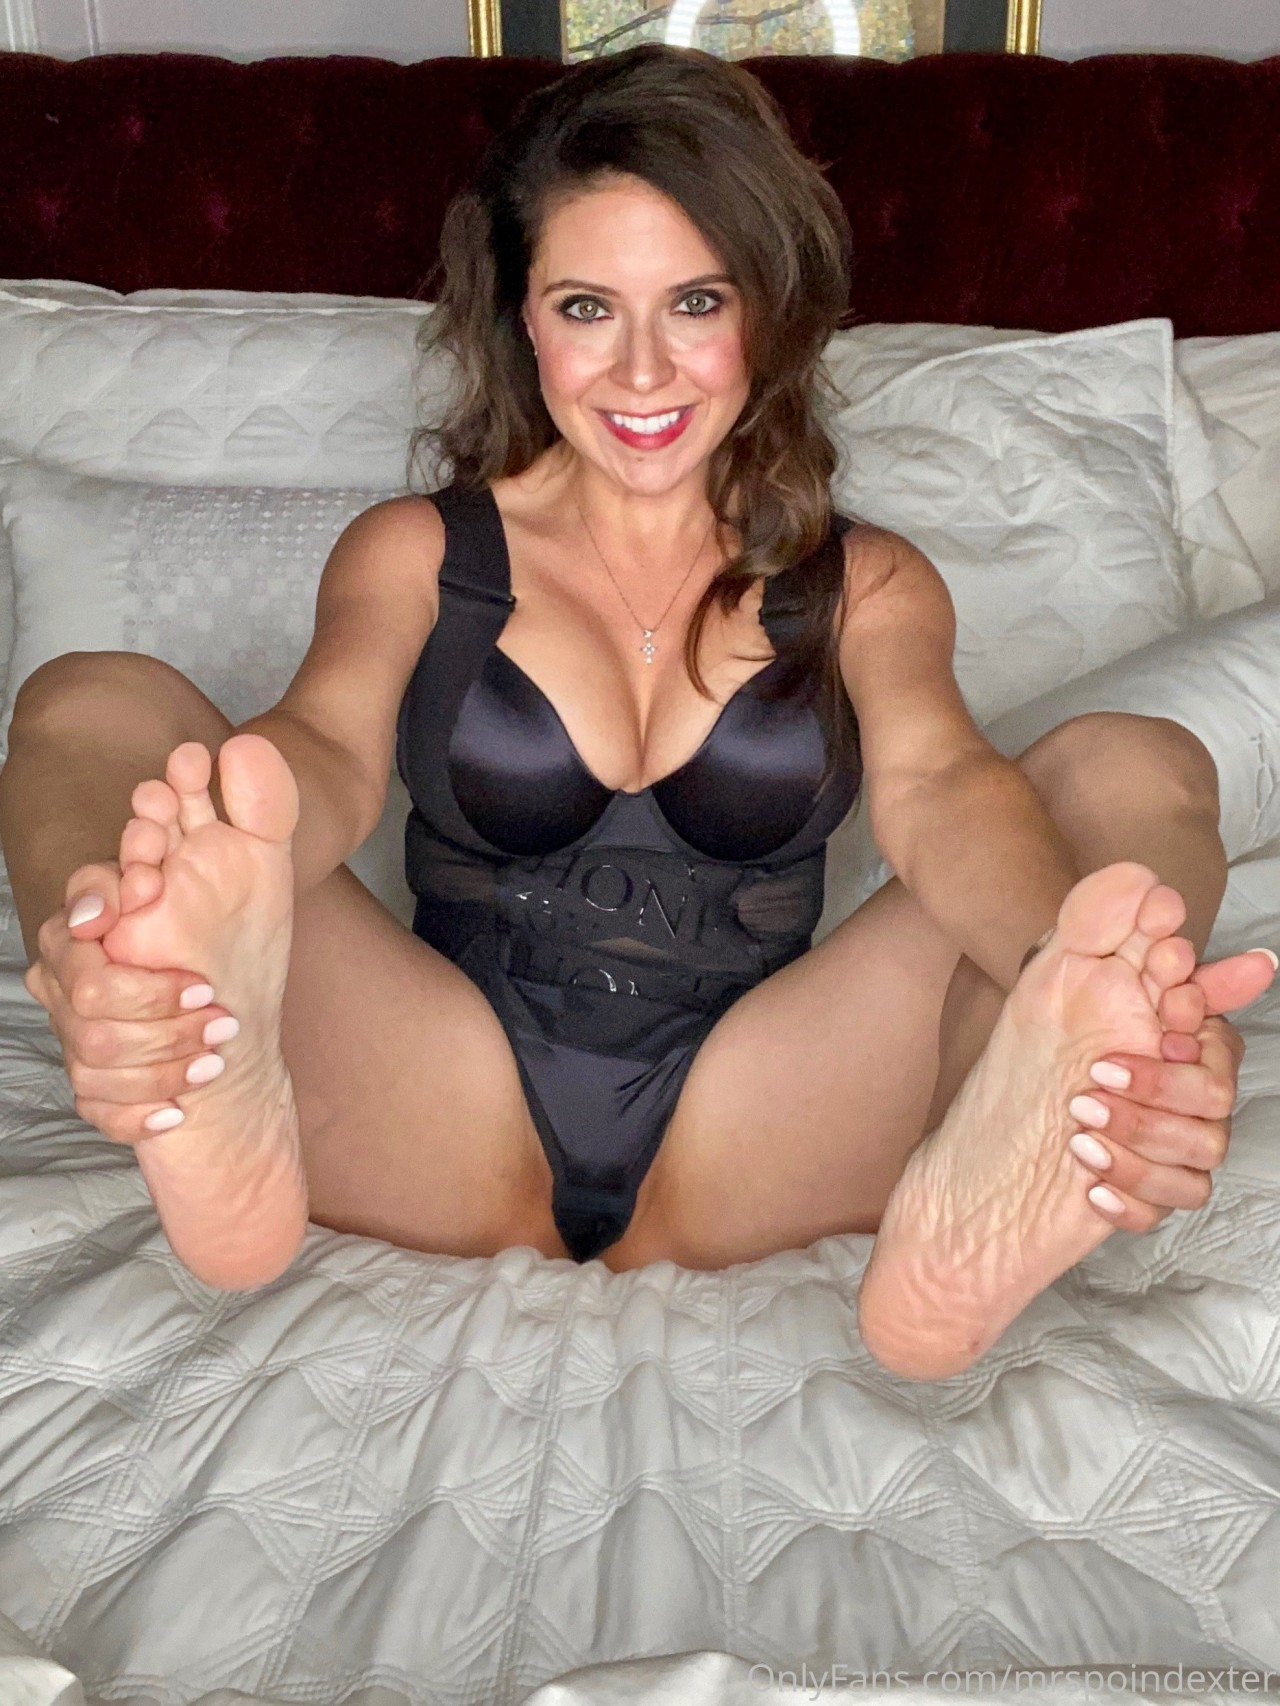 Mrs Poindexter Nude OnlyFans Leaks 2020 - Fapopedia